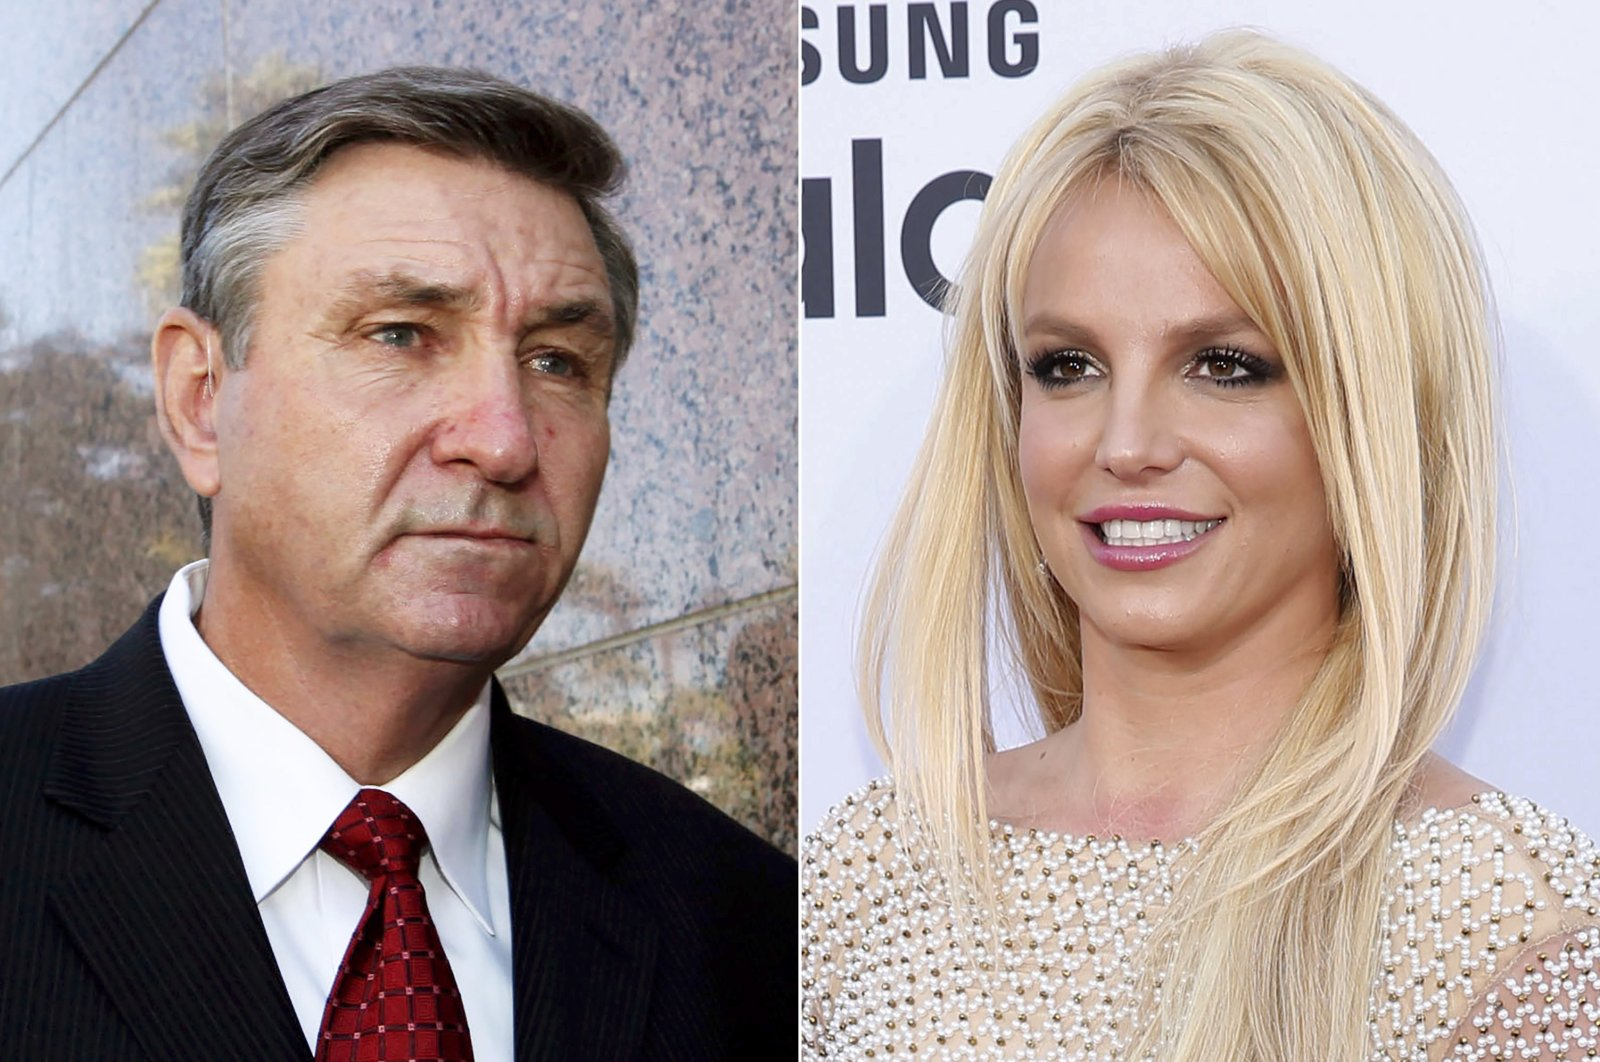 The photo combination shows Jamie Spears, father of singer Britney Spears, leaving the Stanley Mosk Courthouse in Los Angeles, U.S., Oct. 24, 2012 (L) and Britney Spears arriving at the Billboard Music Awards in Las Vegas, U.S., May 17, 2015. (AP Photo)